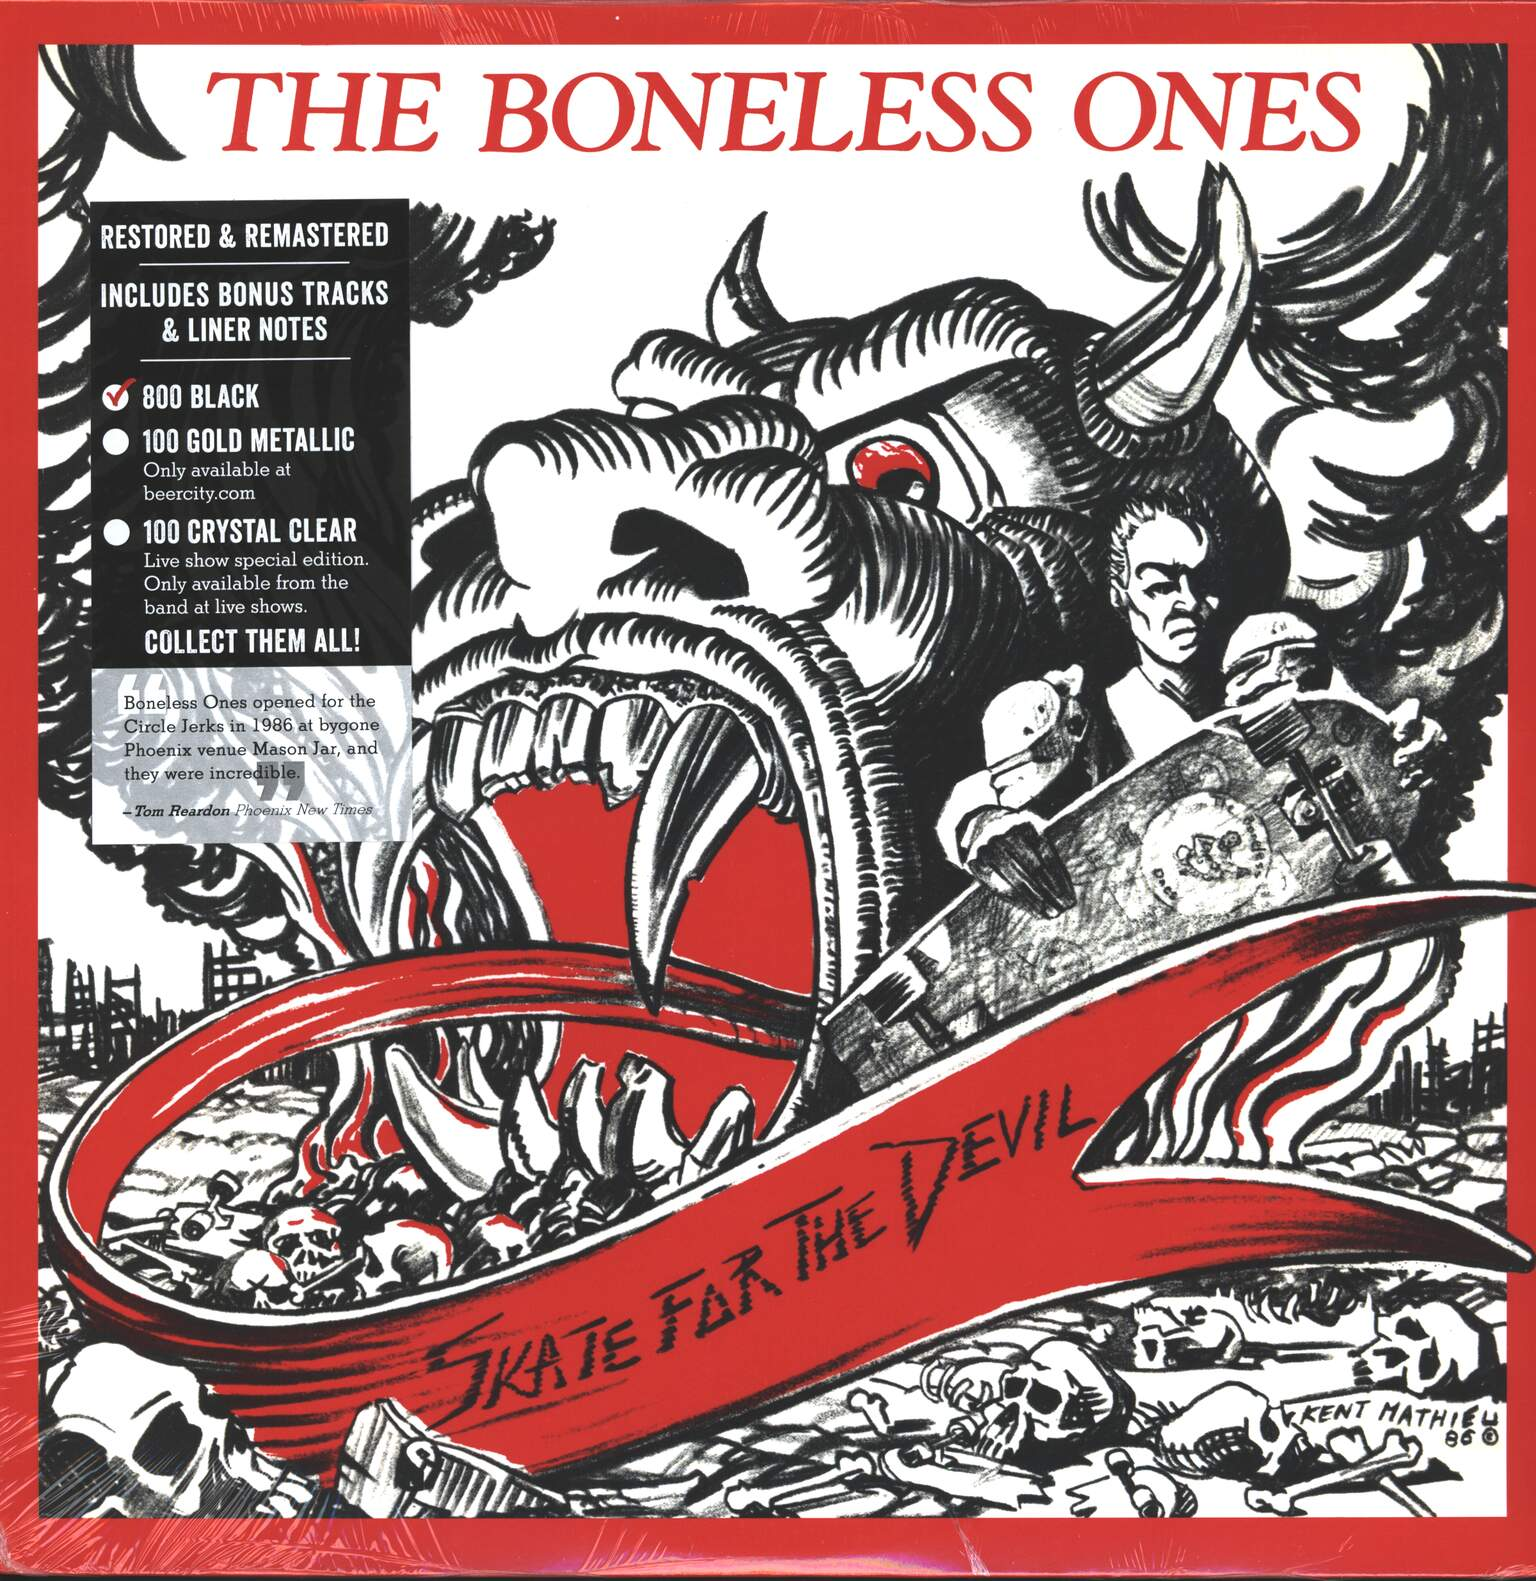 The Boneless Ones: Skate For The Devil, 1×LP (Vinyl)